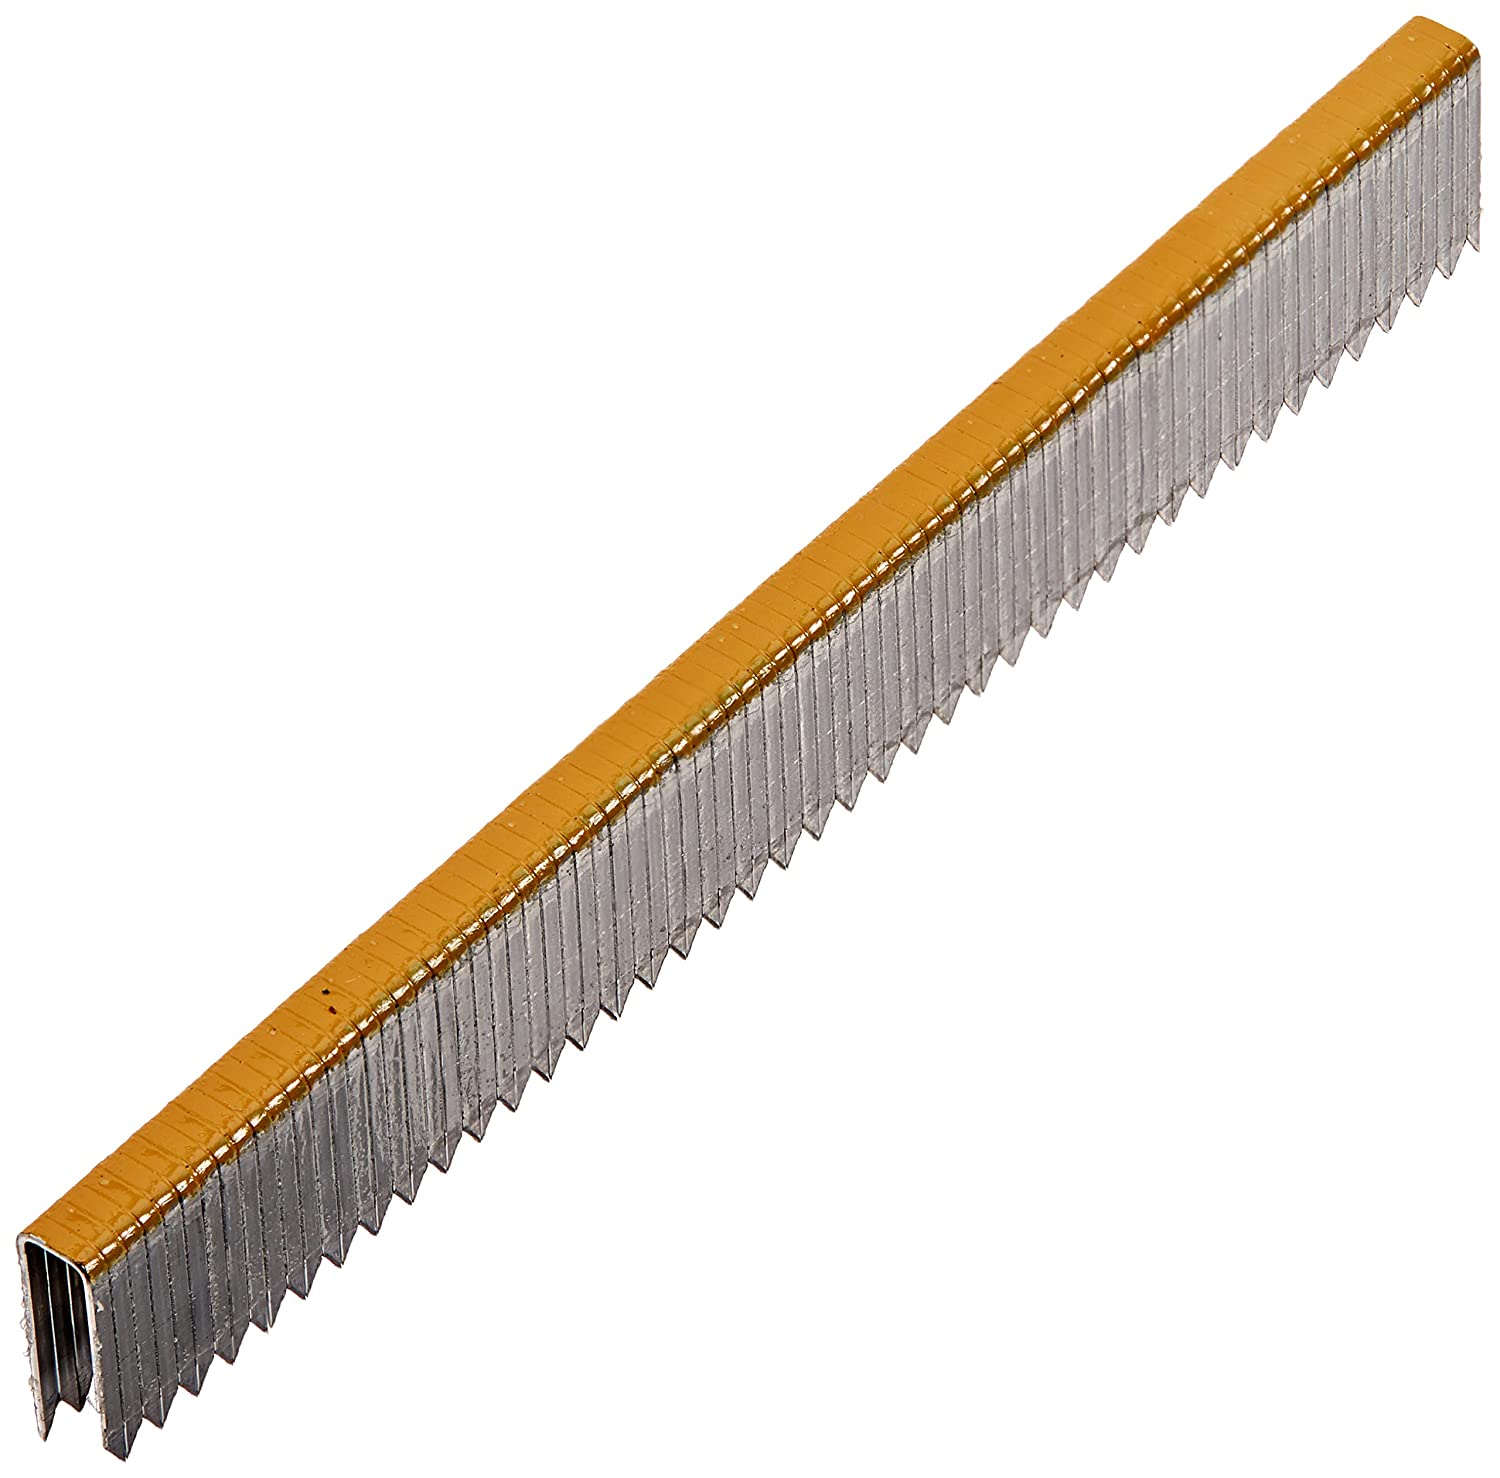 Duo-Fast 5418D 9/16-Inch by 20 Gauge 3/16 Crown Gold Staple (5,000 per Box)